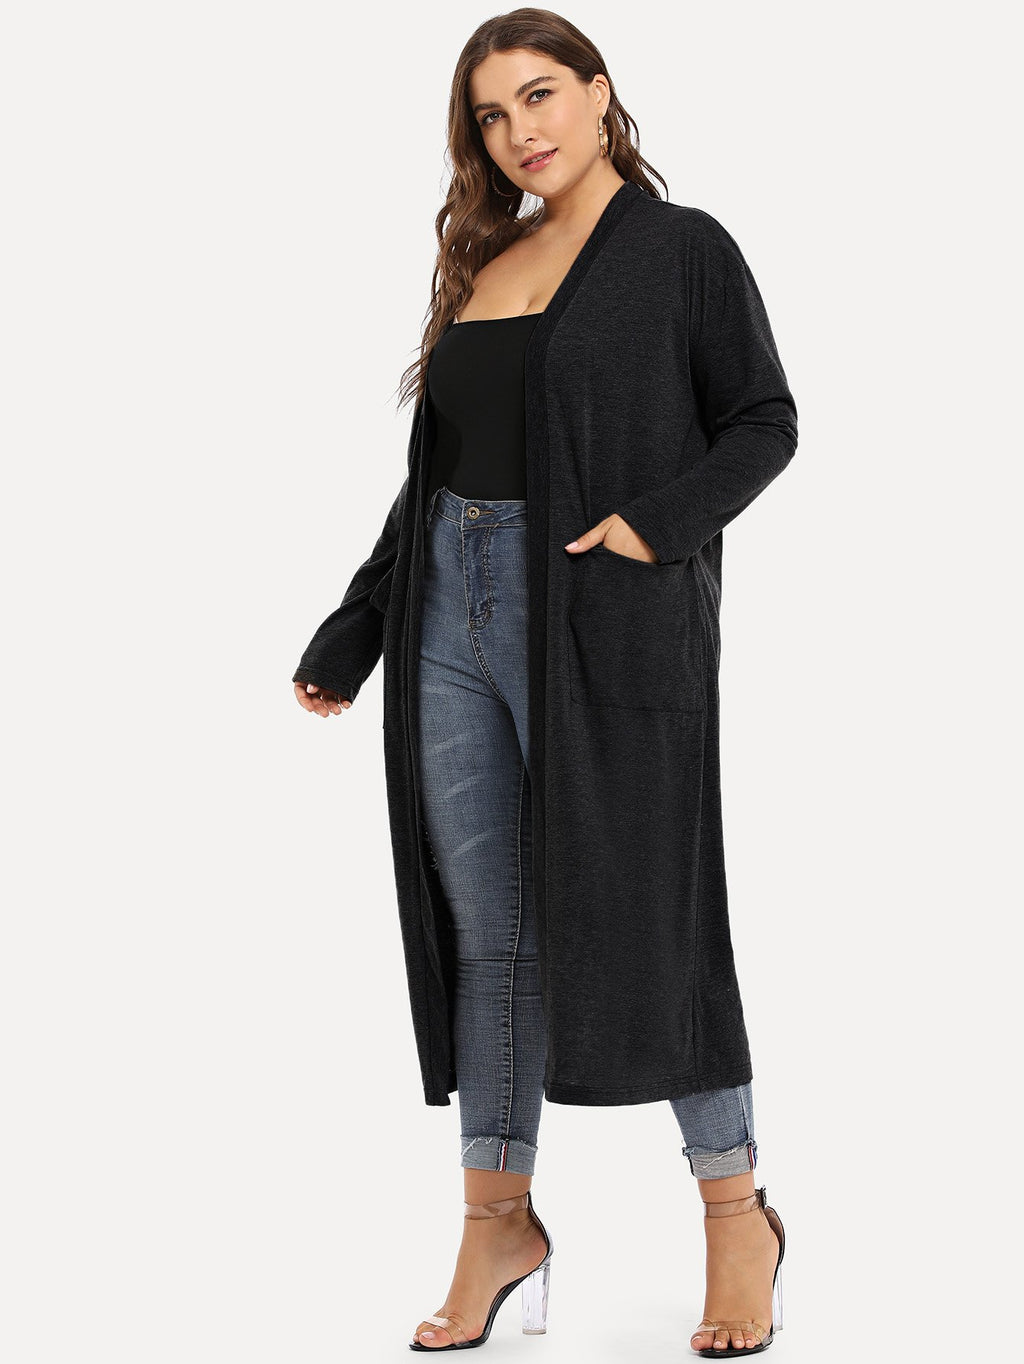 Plus Pocket Detail Solid Longline Coat-Sunshine's Boutique & Gifts